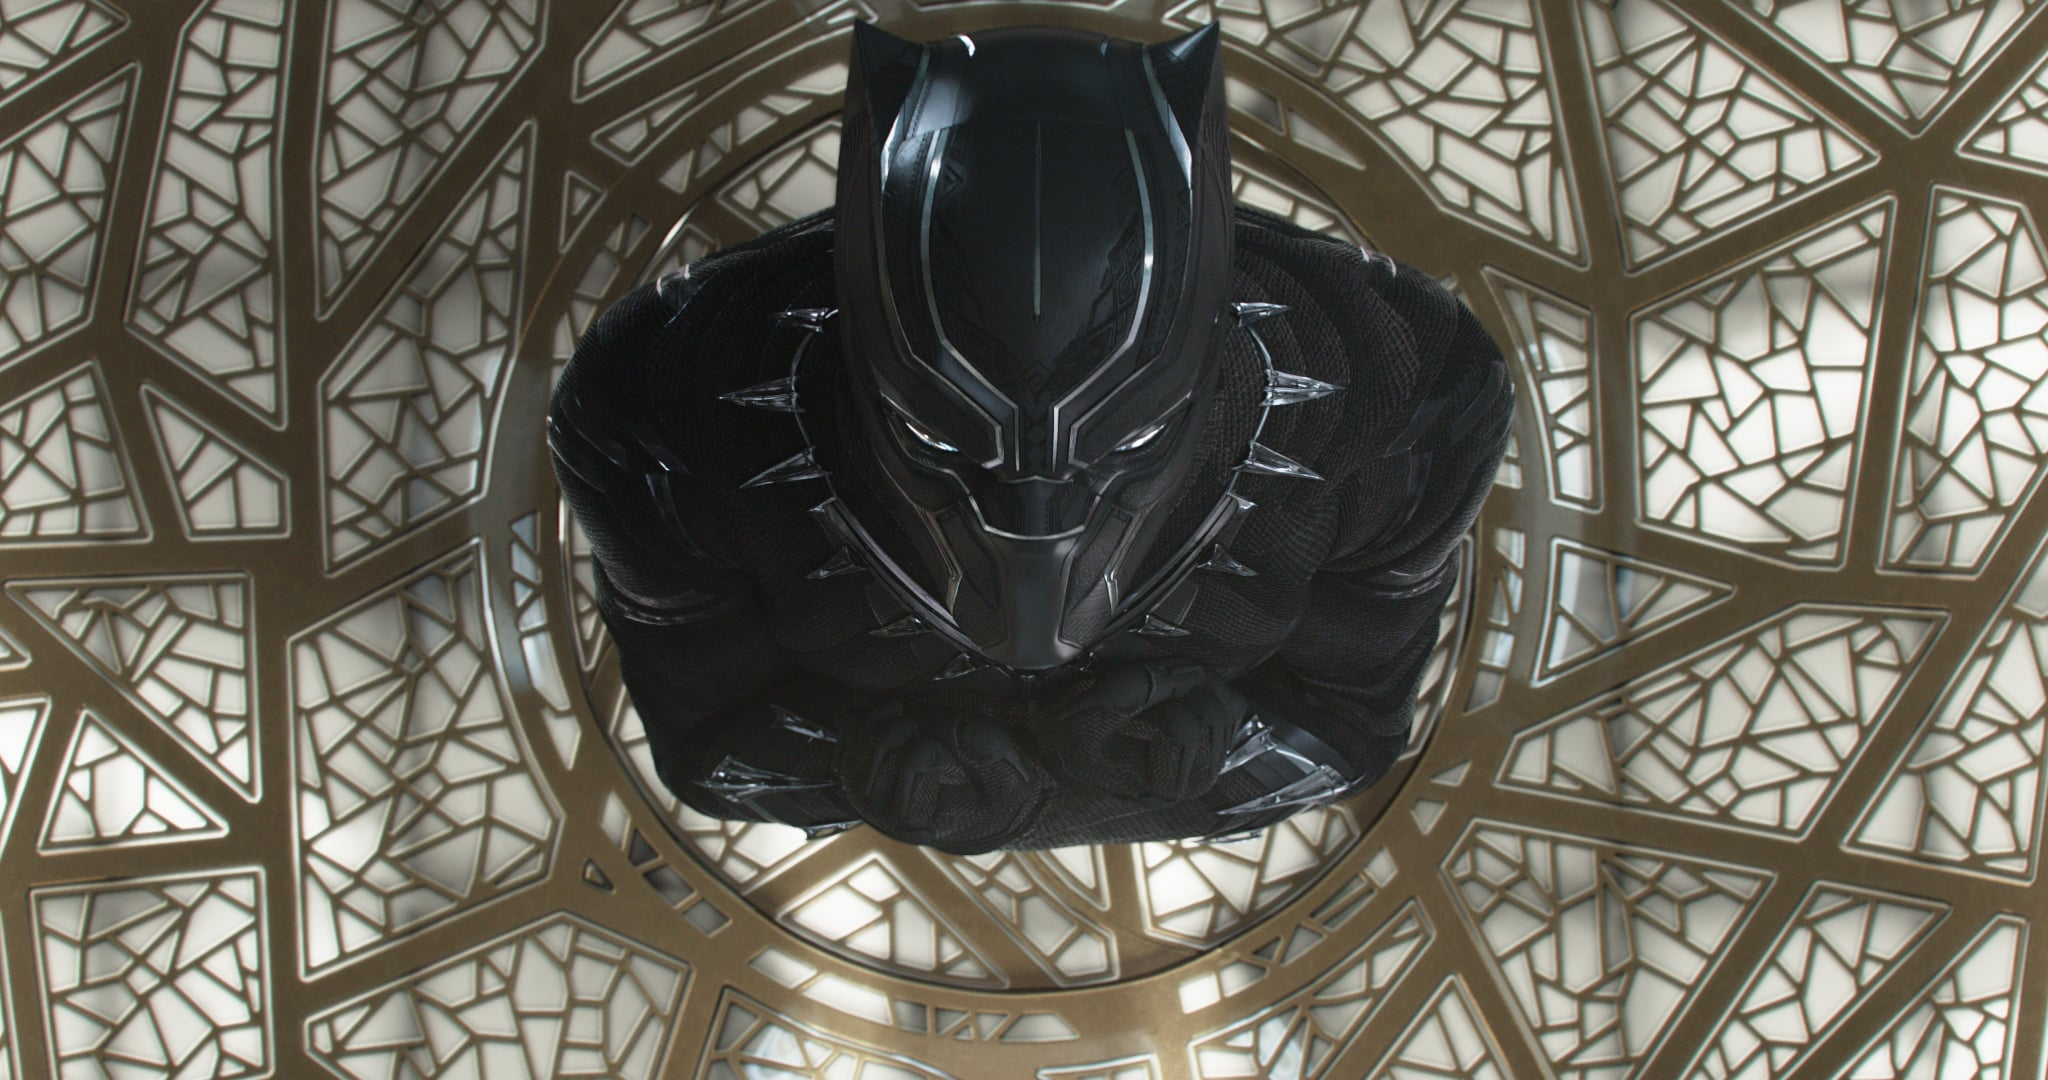 Songs From Black Panther Trailers Popsugar Entertainment